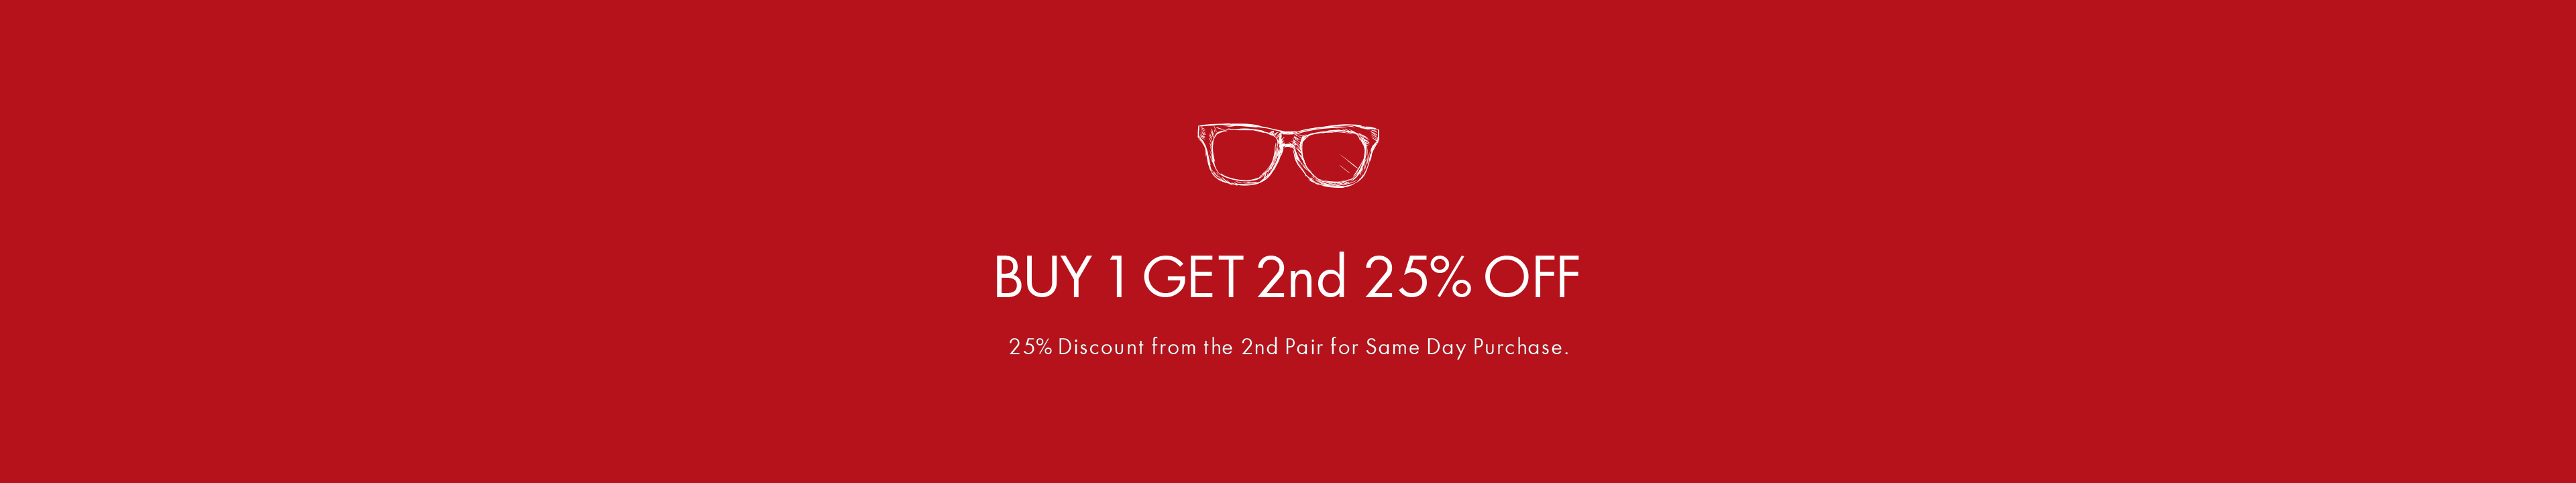 BUY 1 GET 2nd 25% OFF